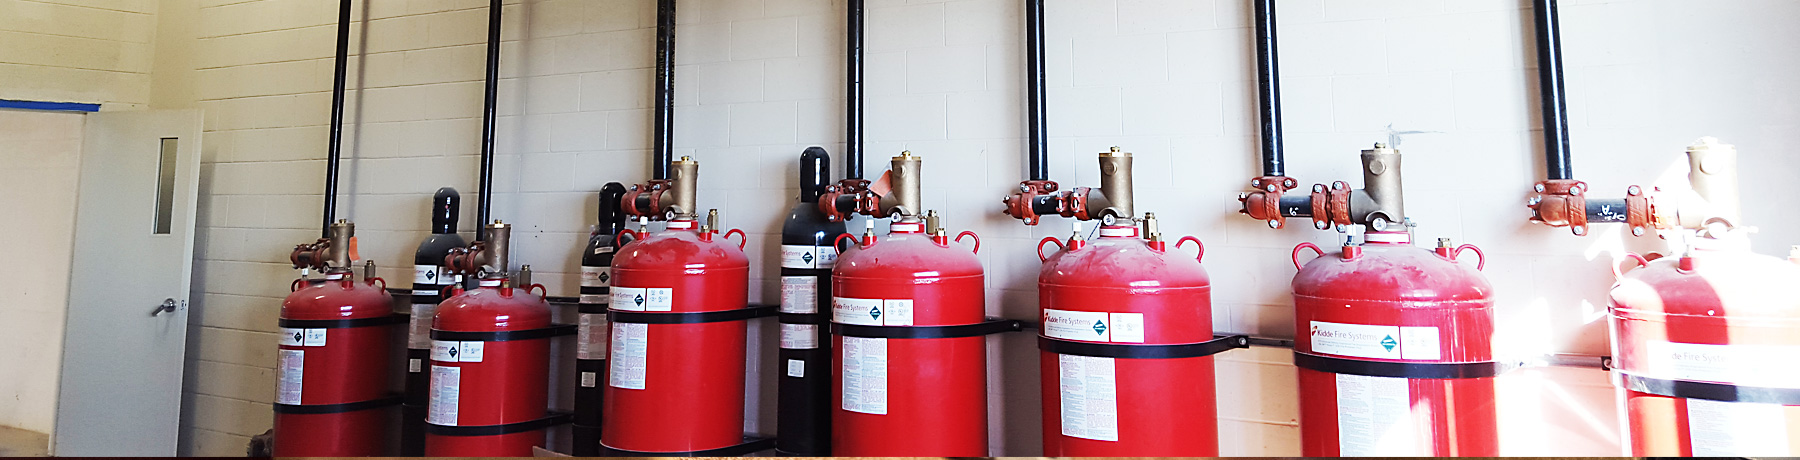 Fire Suppression Systems for Industrial Applications